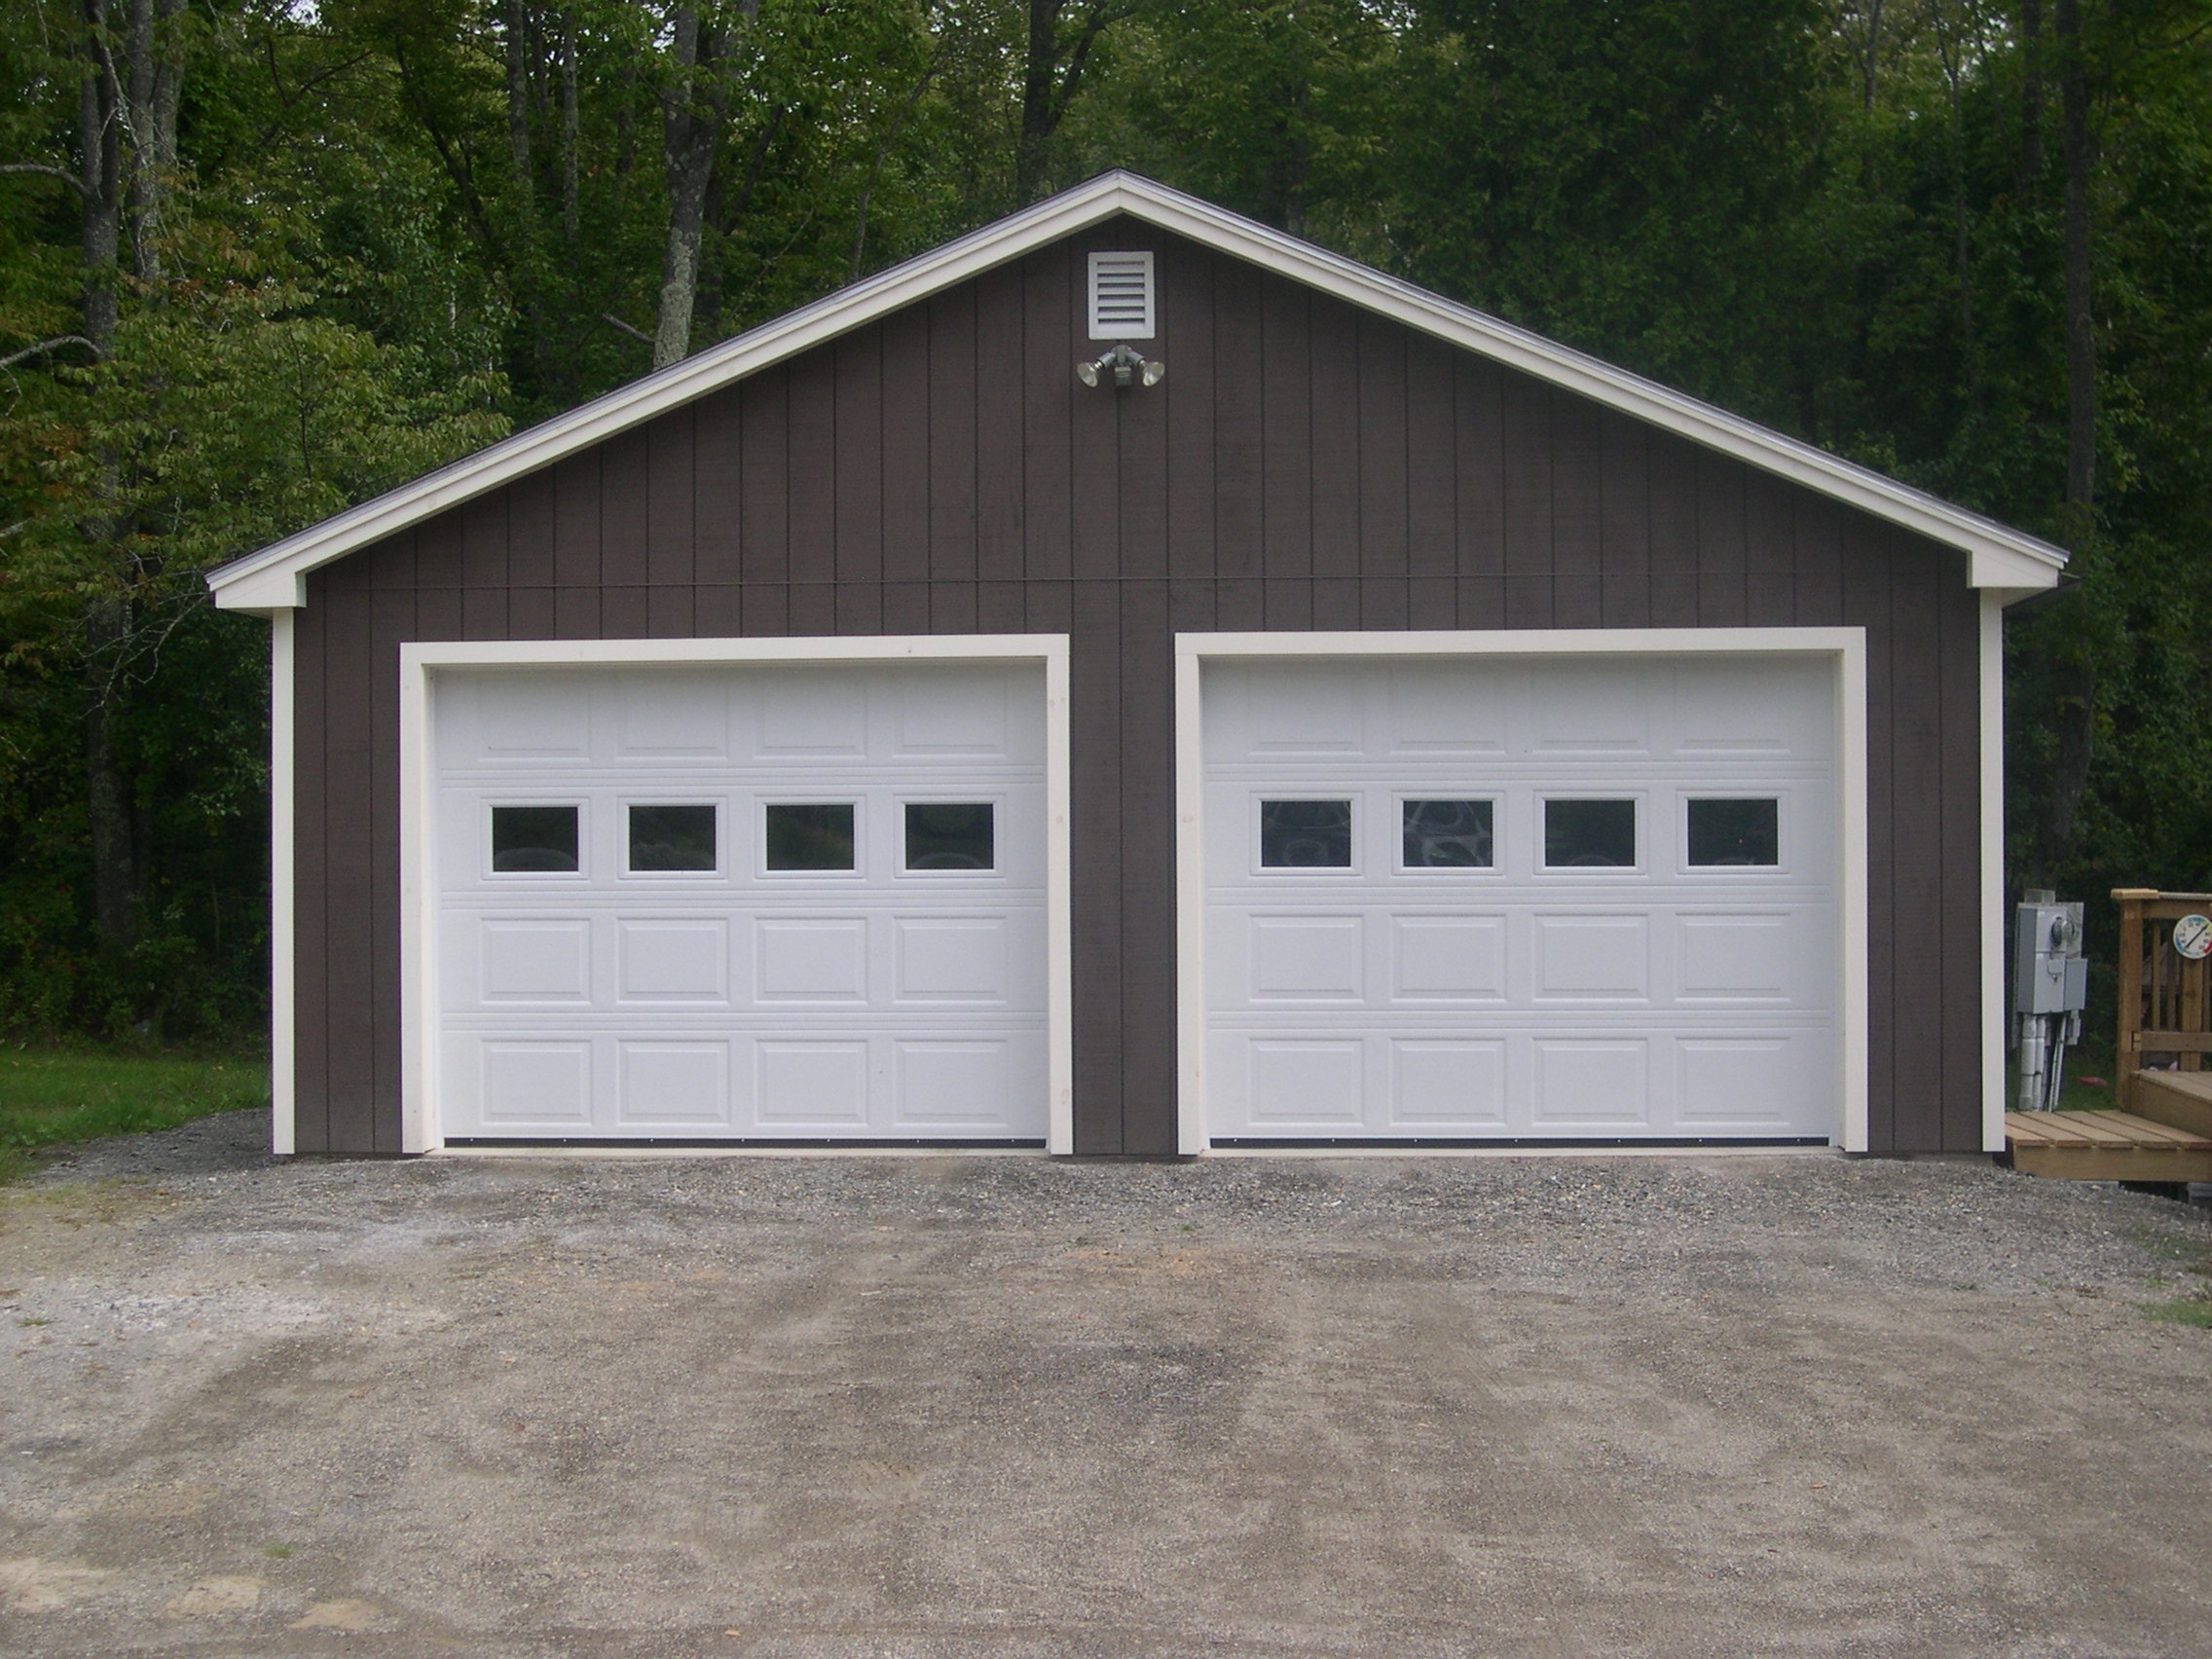 How much to build a garage on side of the house uk for Home garage design